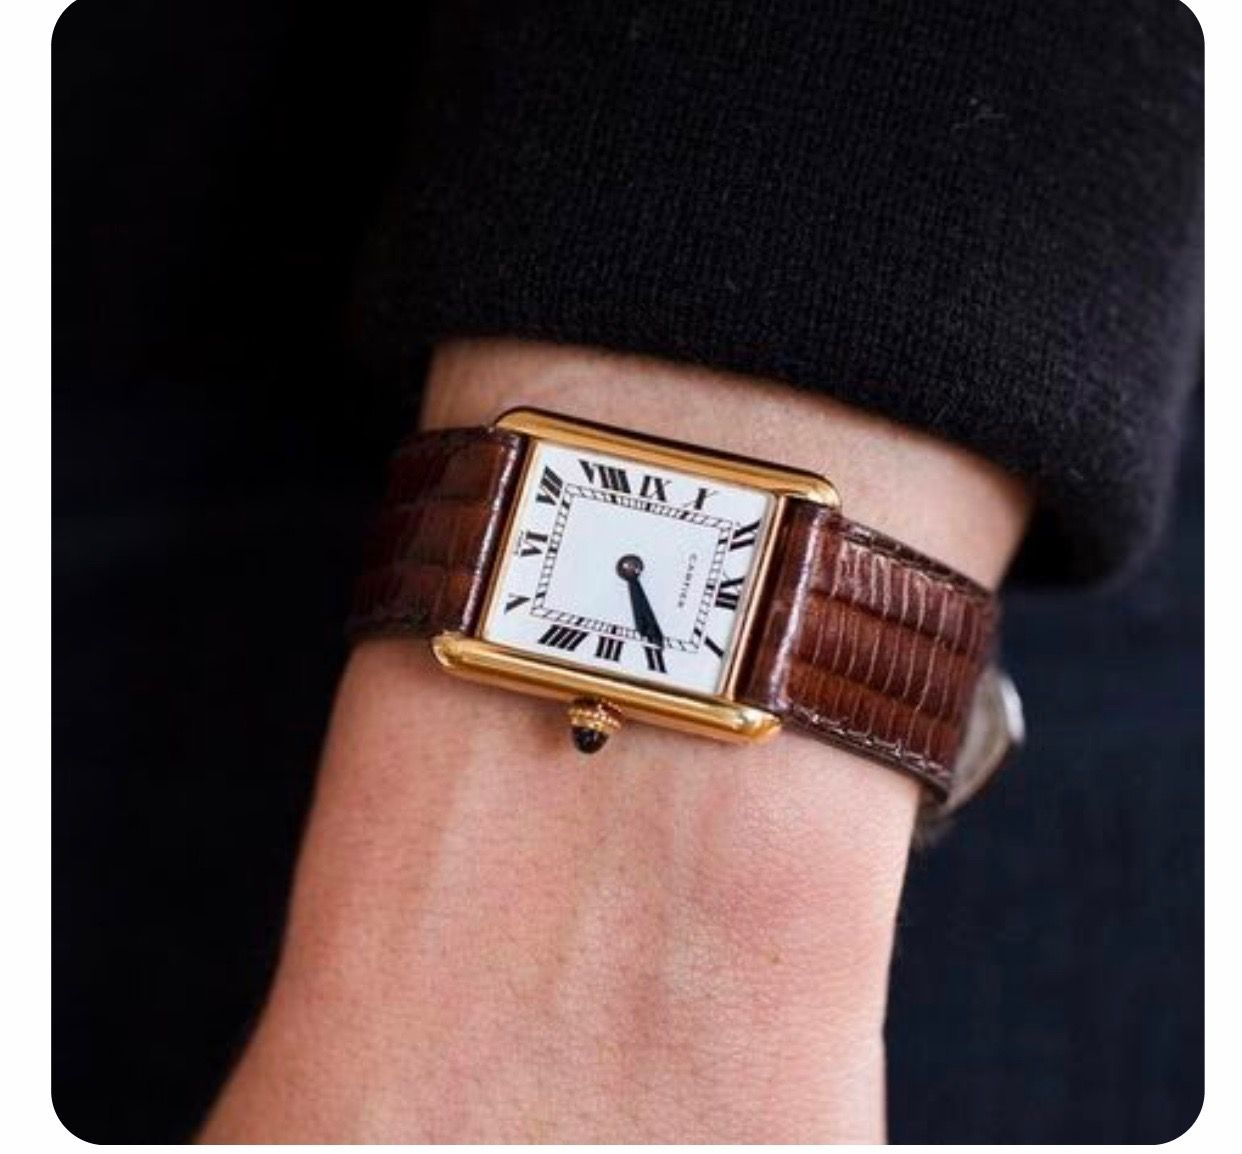 TANK LOUIS CARTIER WATCH SMALL MODEL, 18K YELLOW GOLD, LEATHER, SAPPHIRE REF: W1529856 AU$ 12,200 #vintagewatches